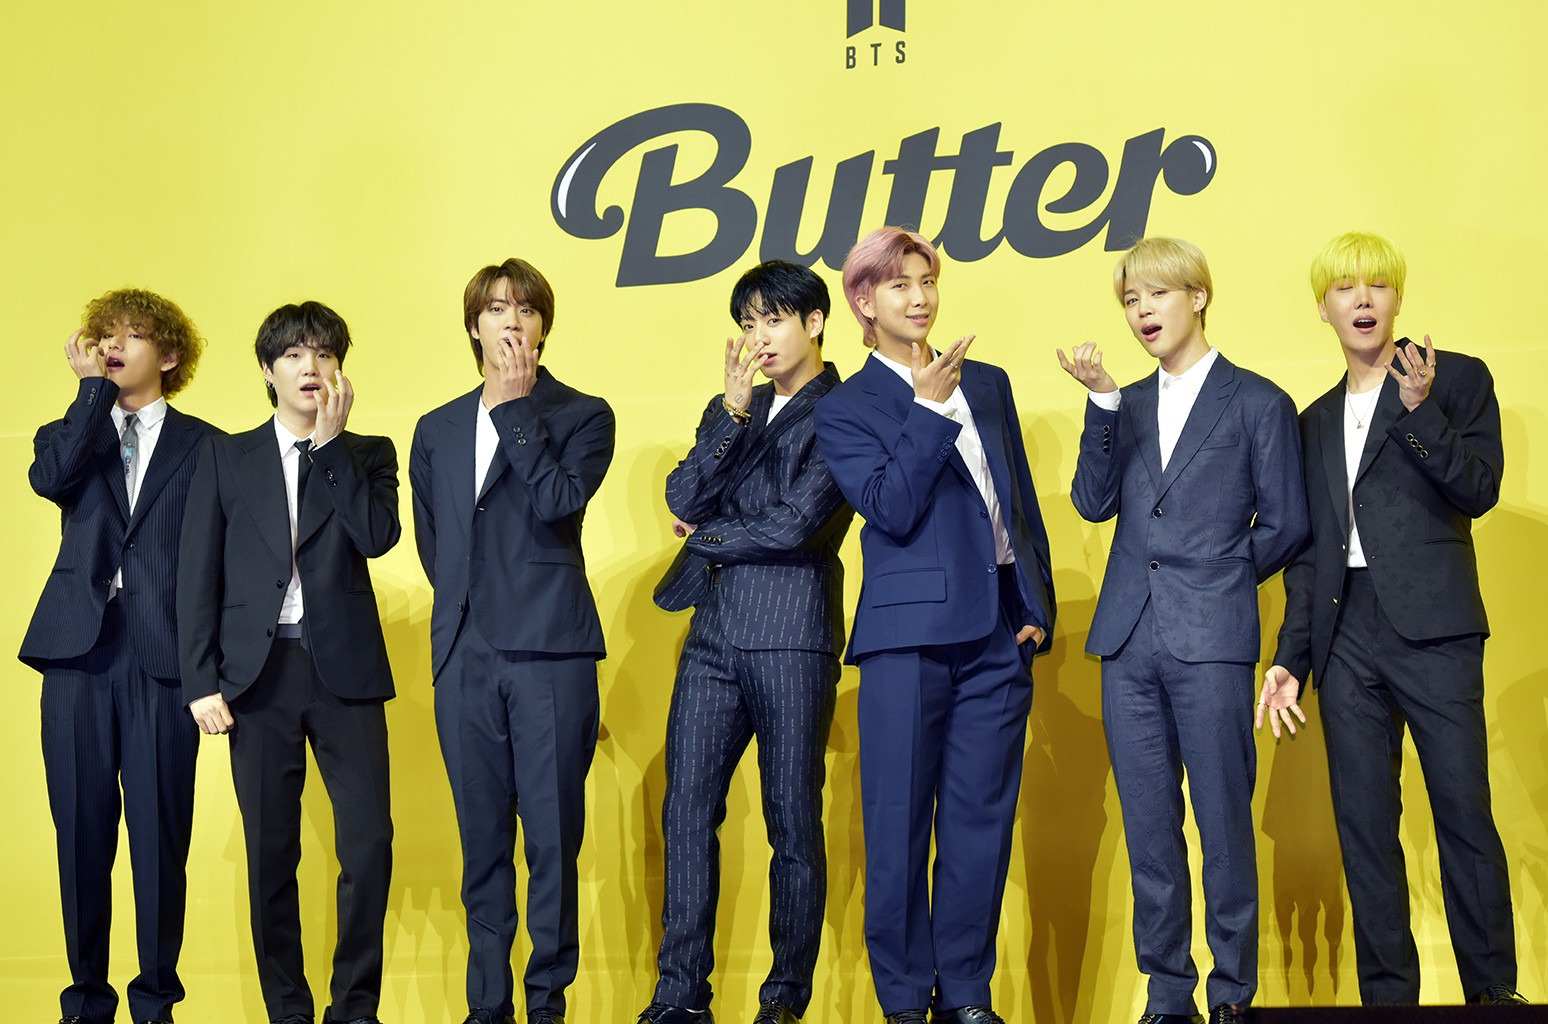 BTS' 'Butter' Leads Hot 100 for Fifth Week, Dua Lipa's 'Levitating' Becomes Most-Heard Radio Hit